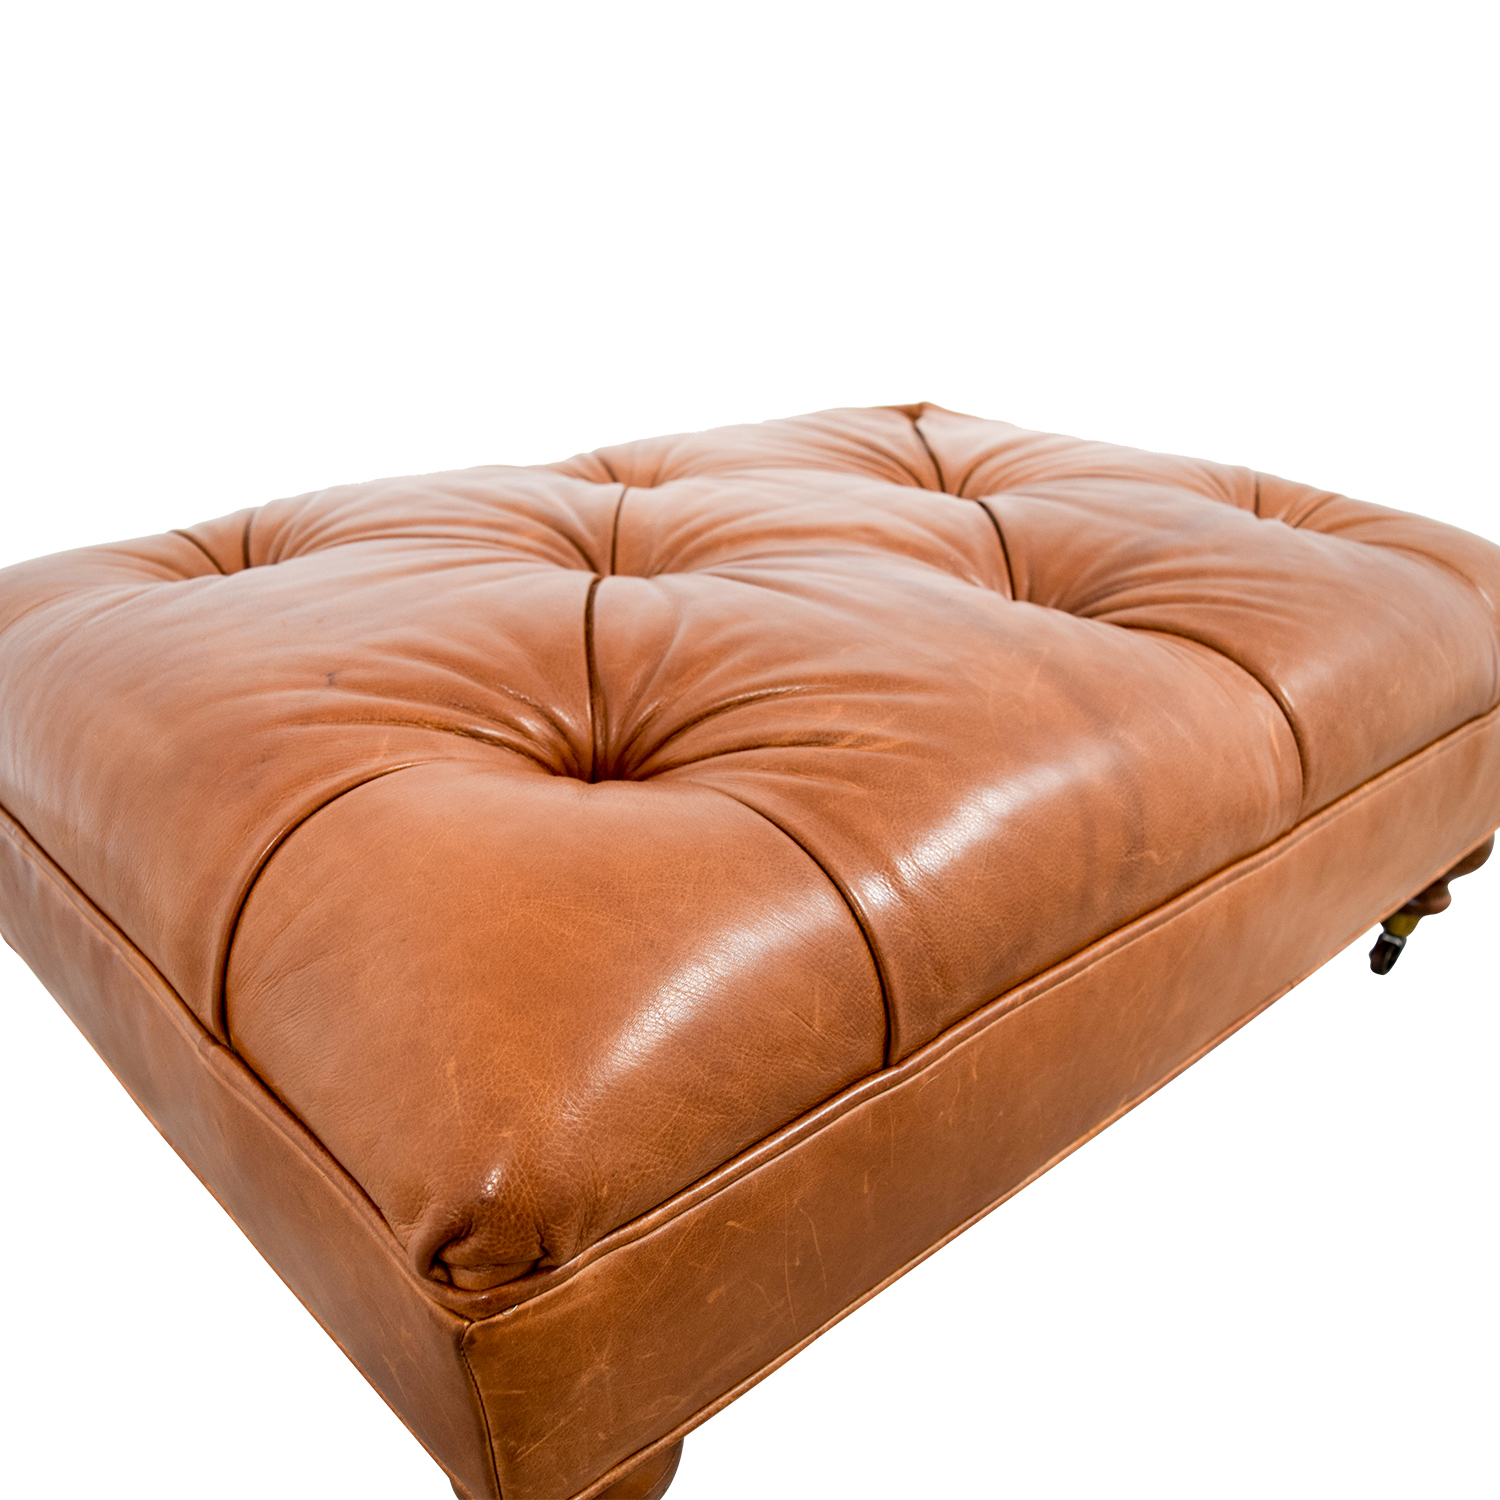 81 Off Ethan Allen Ethan Allen Anton Tufted Leather